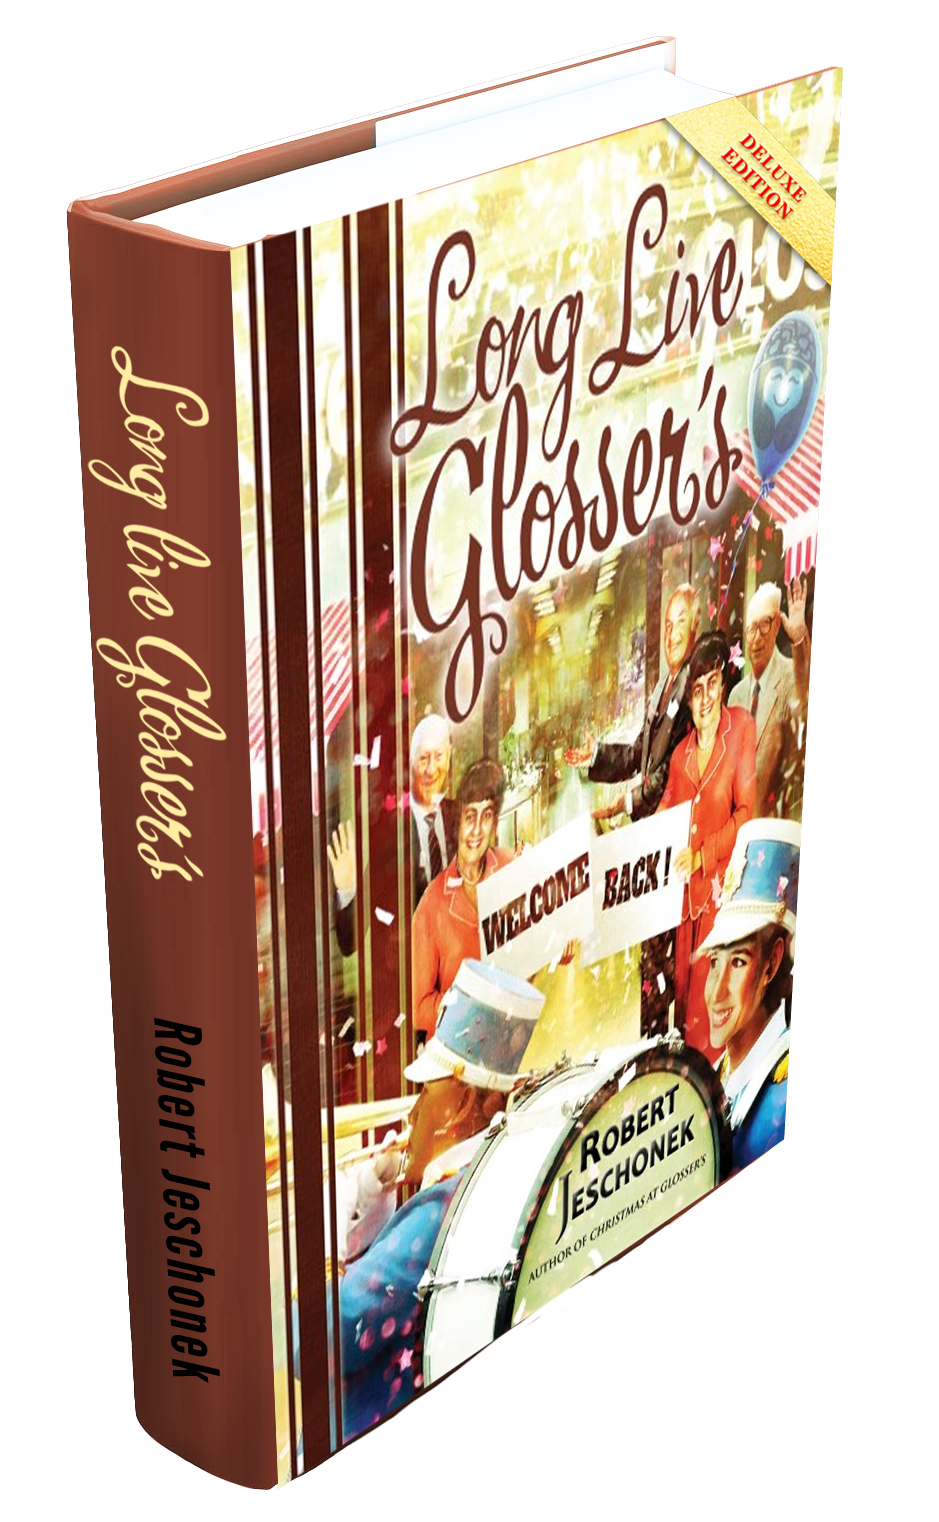 Long Live Glossers Book Hardcover Deluxe Cropped